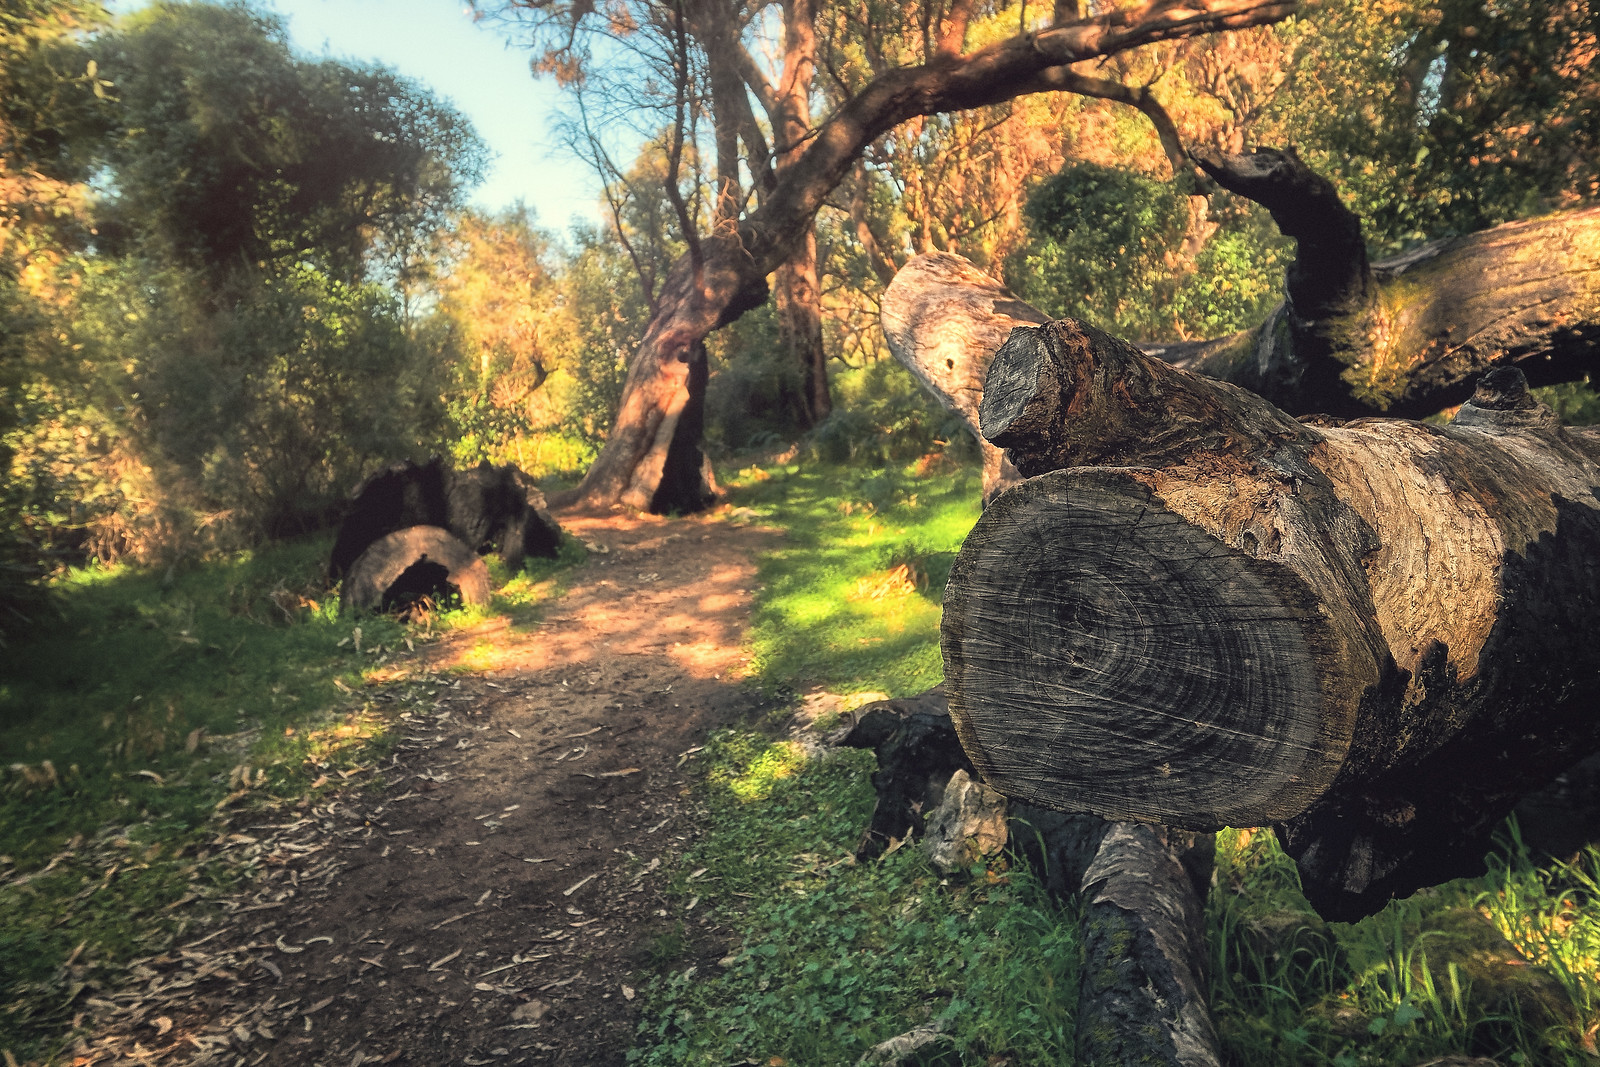 Forest path in Yanchep National Park Perth Australia